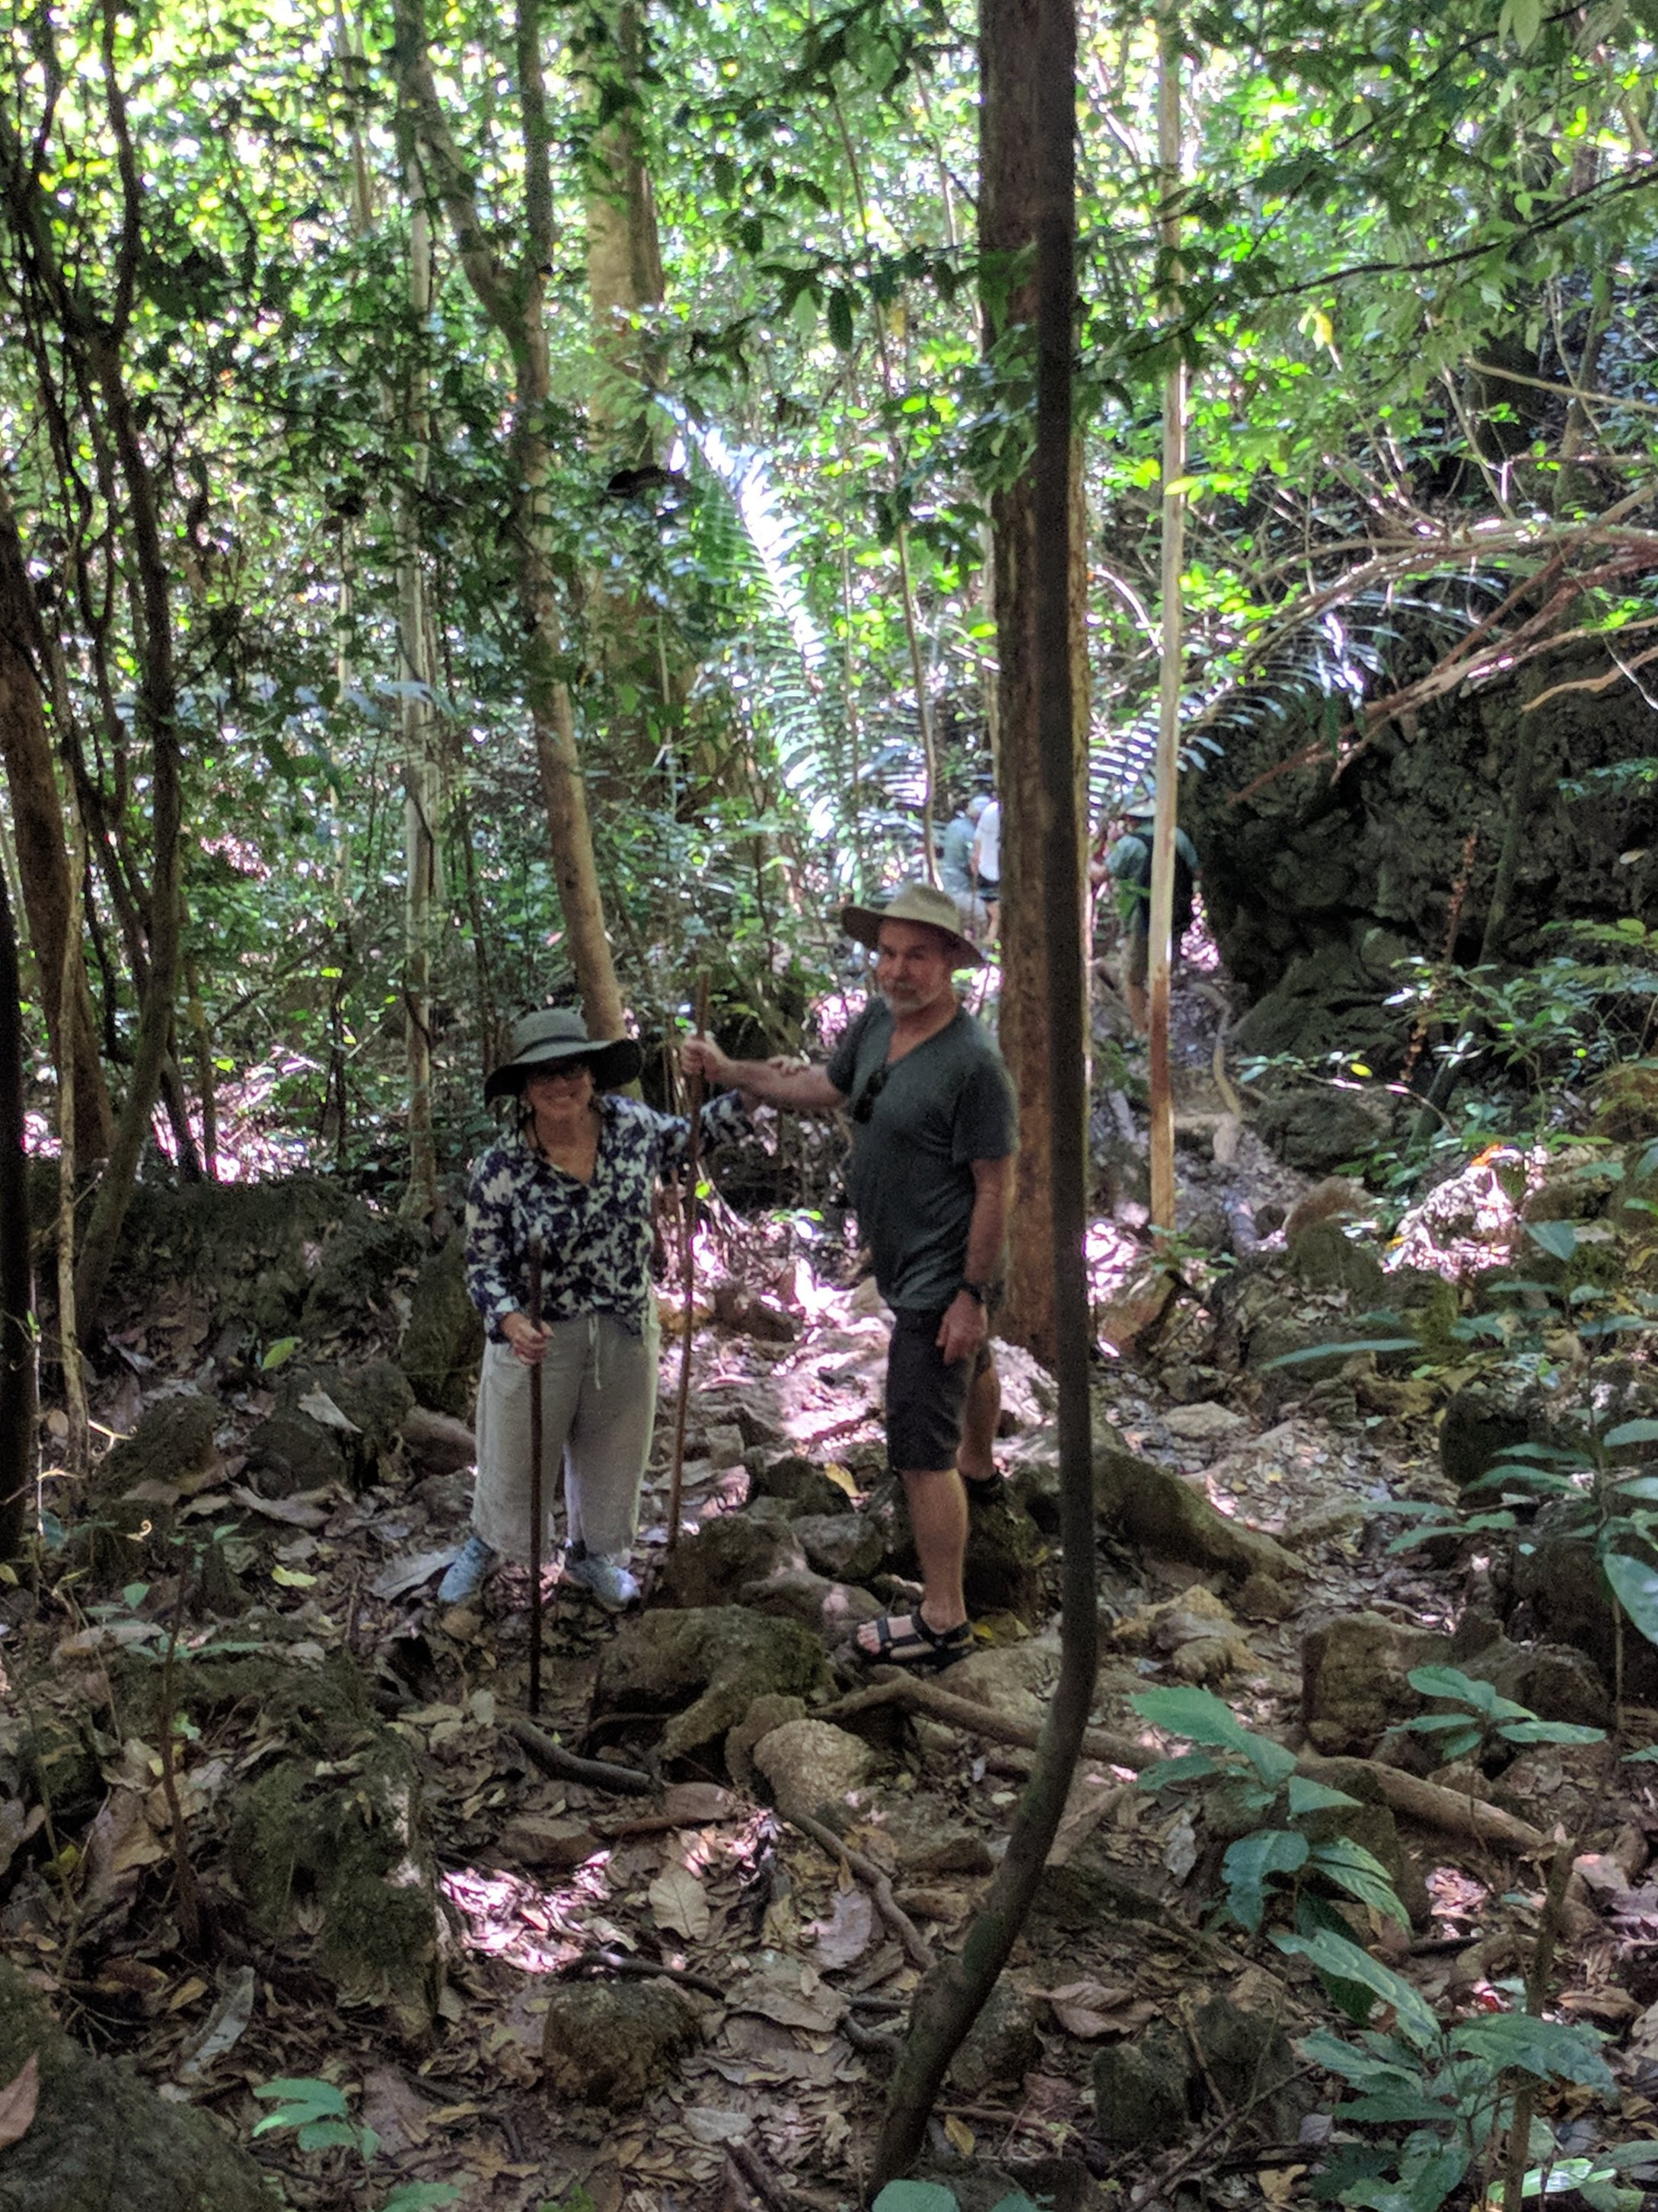 Chris and Chuck exploring the jungle in Khao Sok National Park, Thailand a few weeks ago.